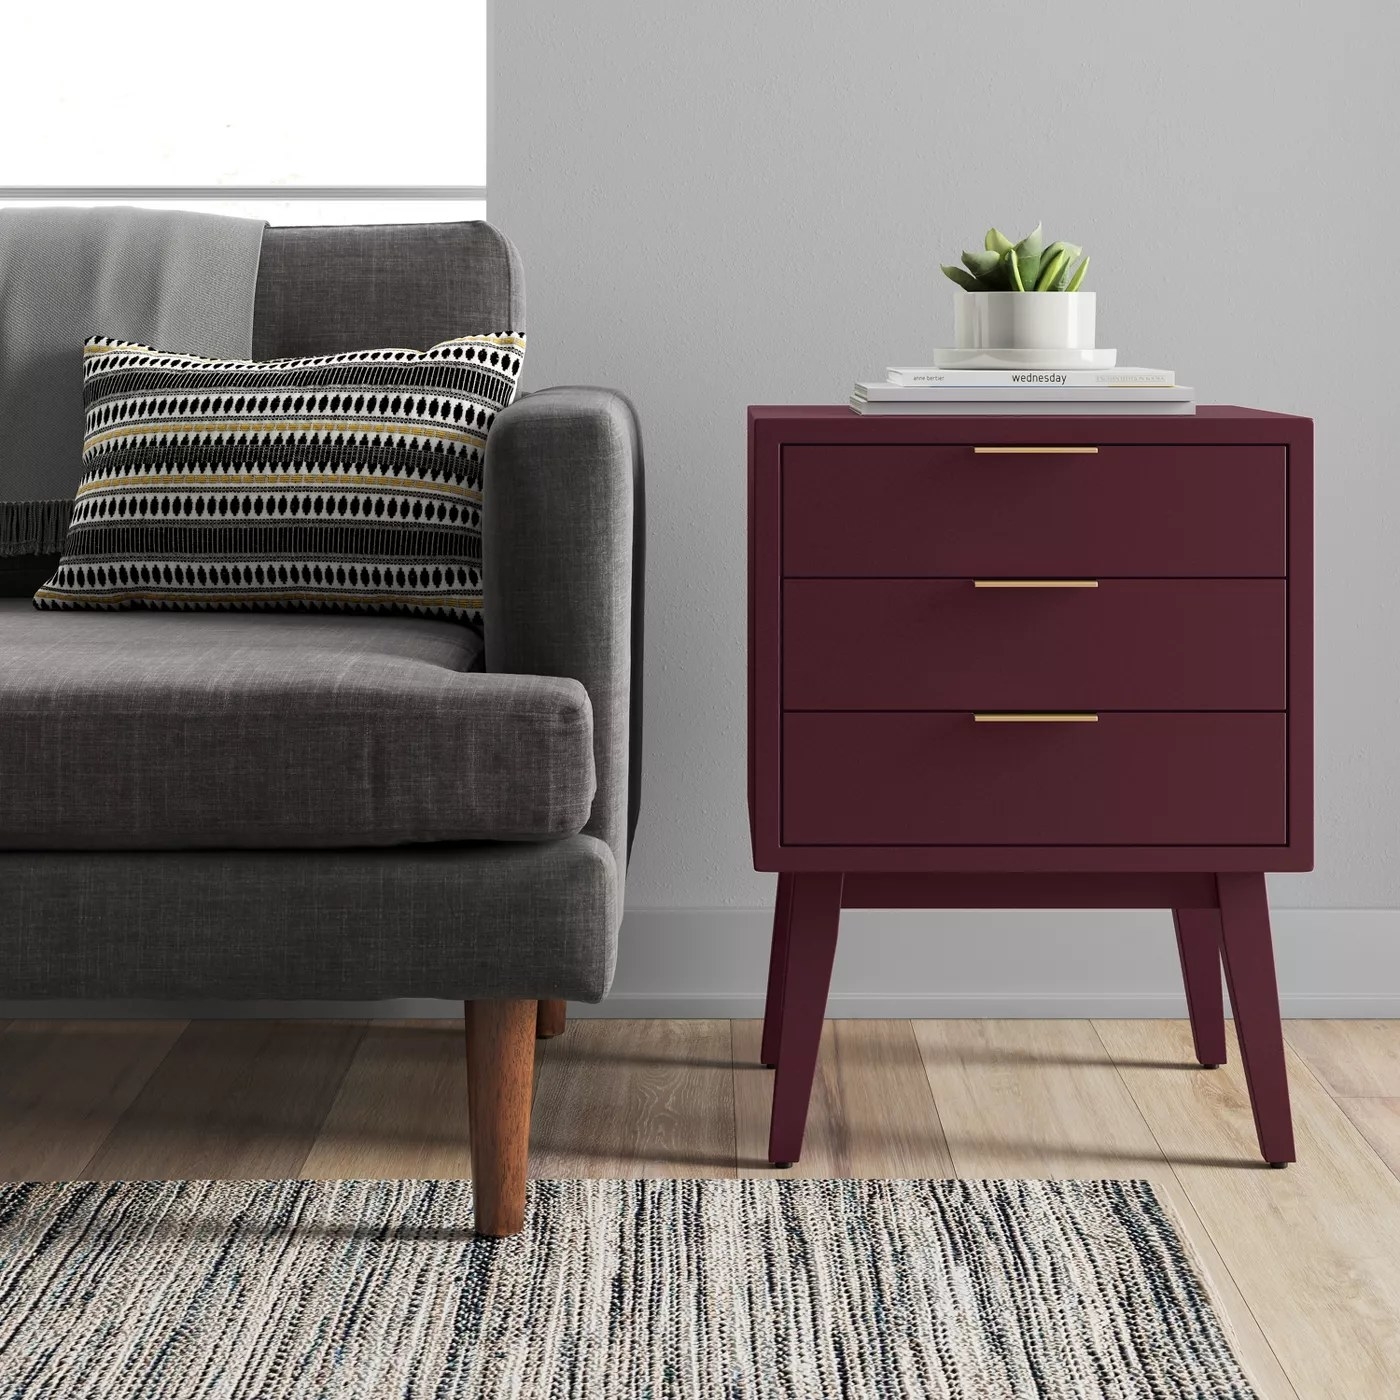 The maroon end table with three drawers and gold bar knobs